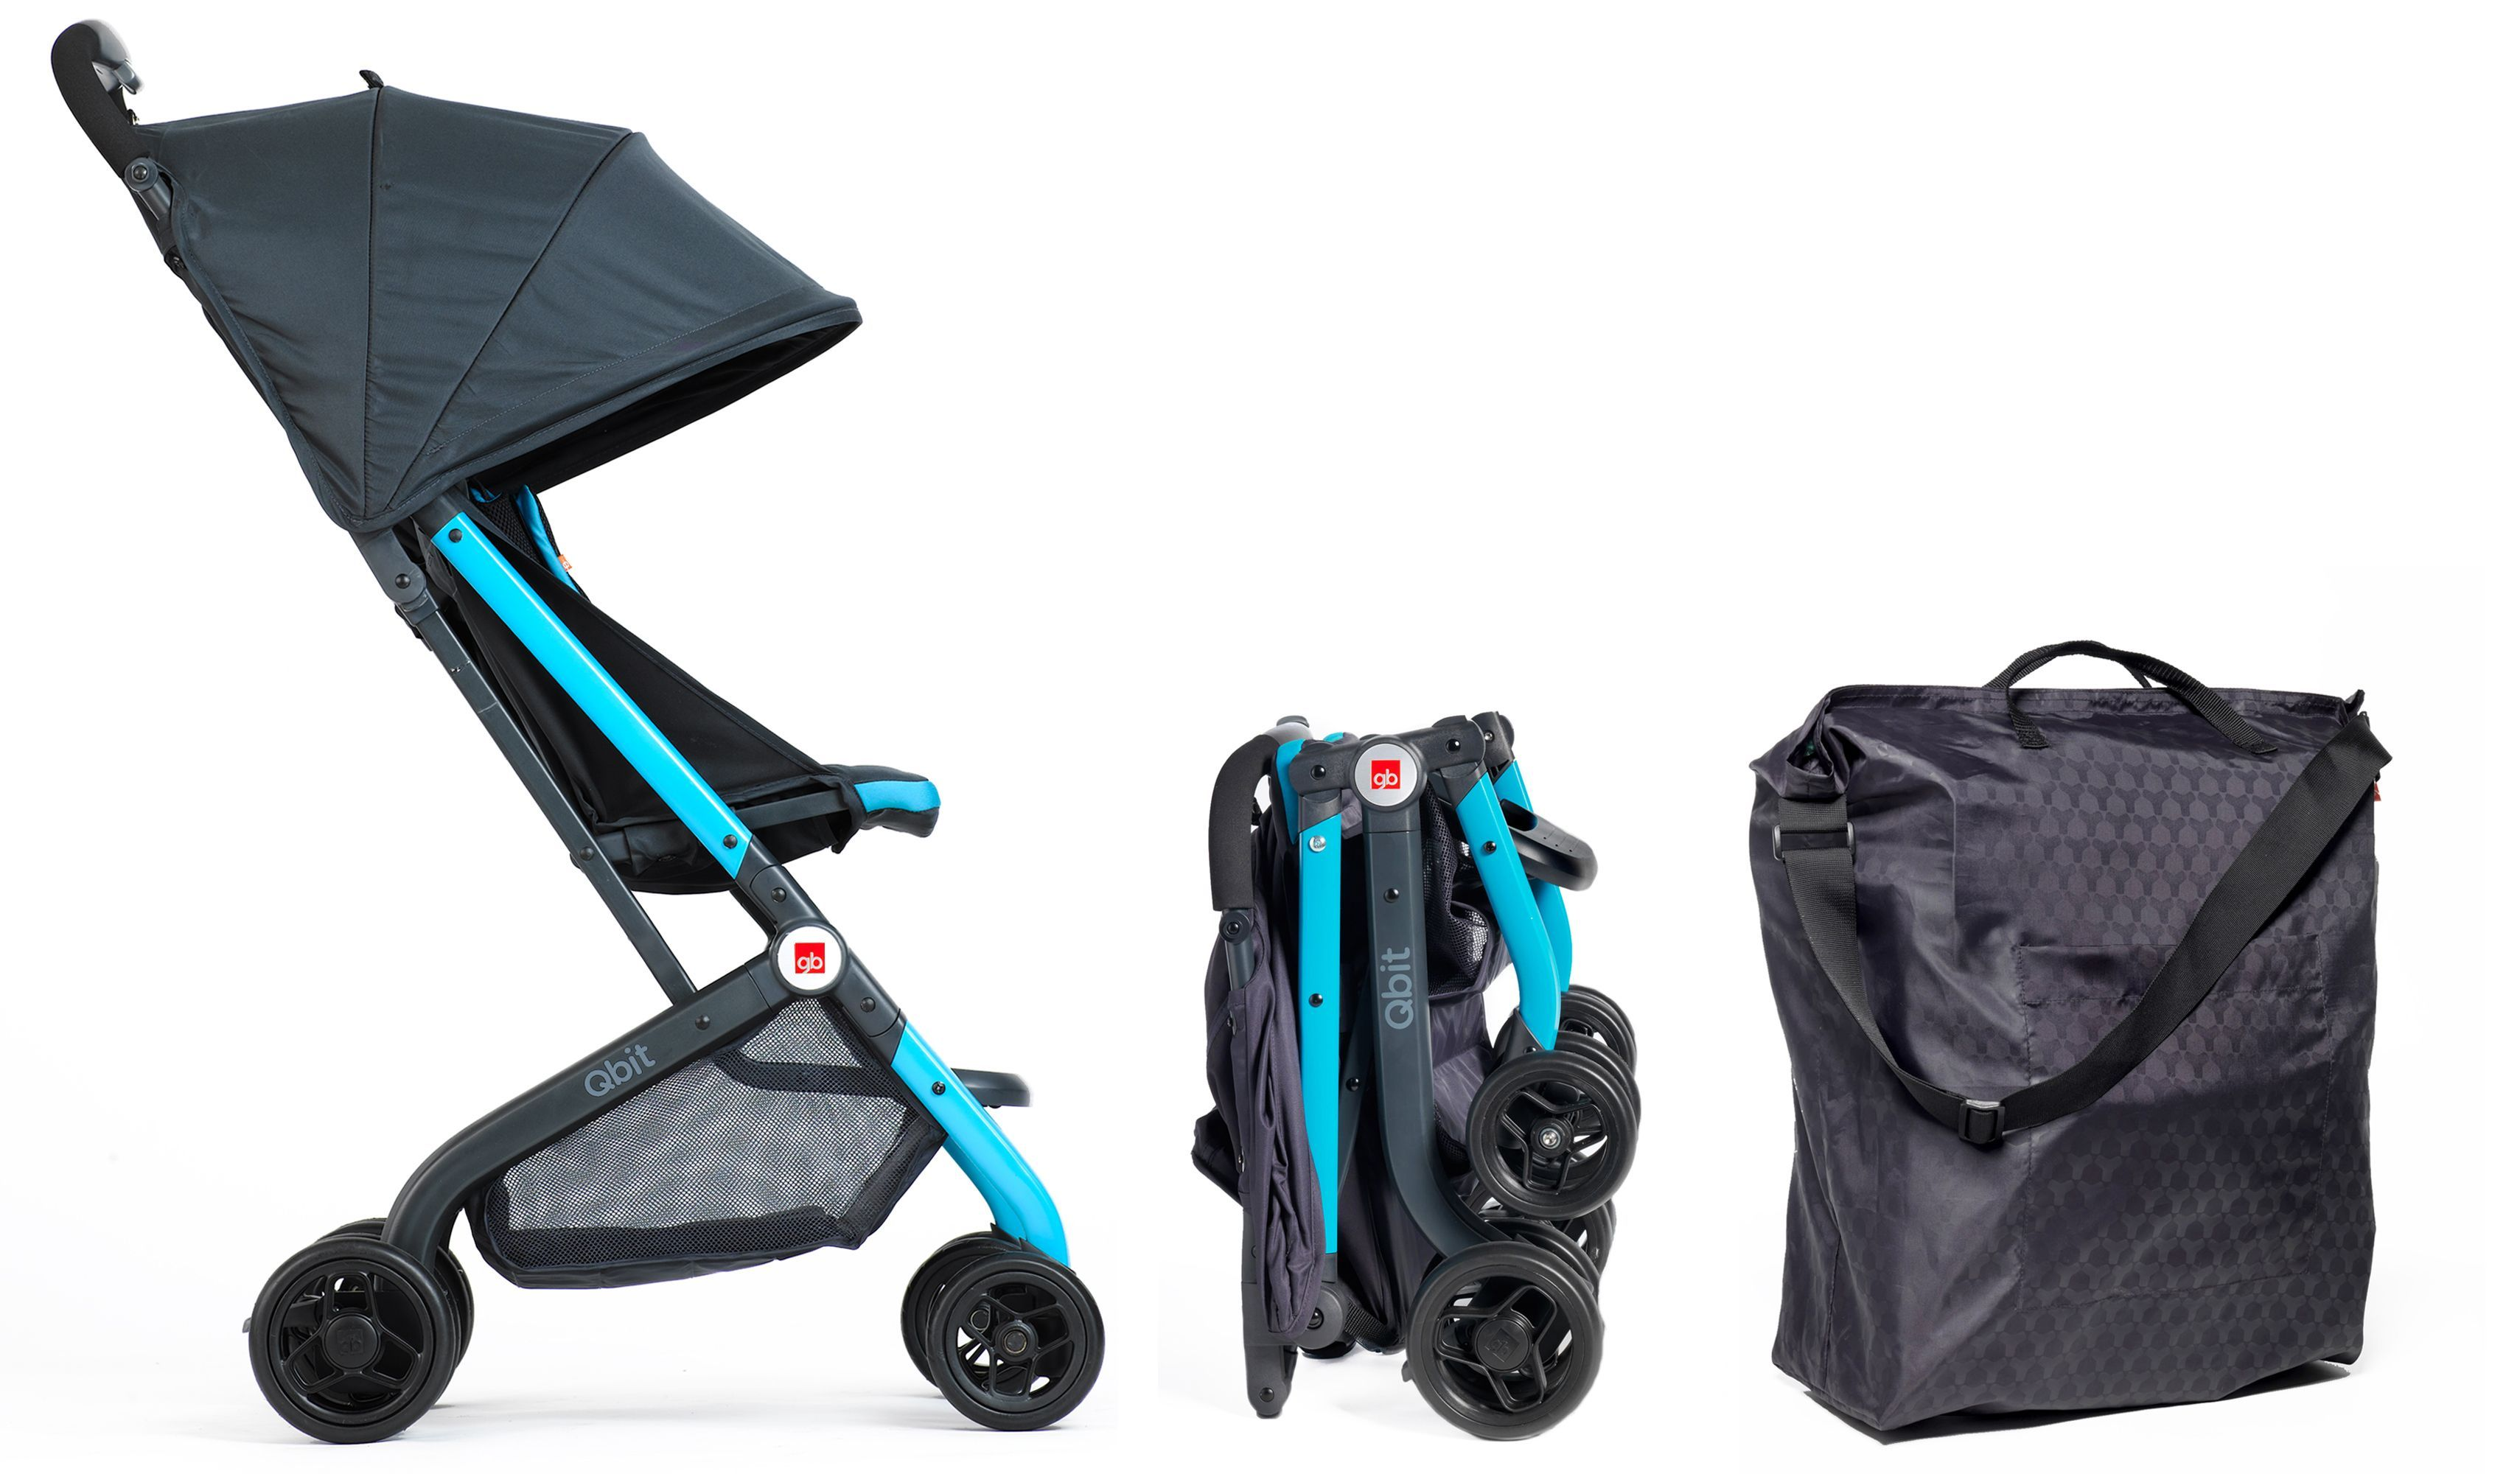 GB Qbit Travel Stroller Includes carry bag making it easy